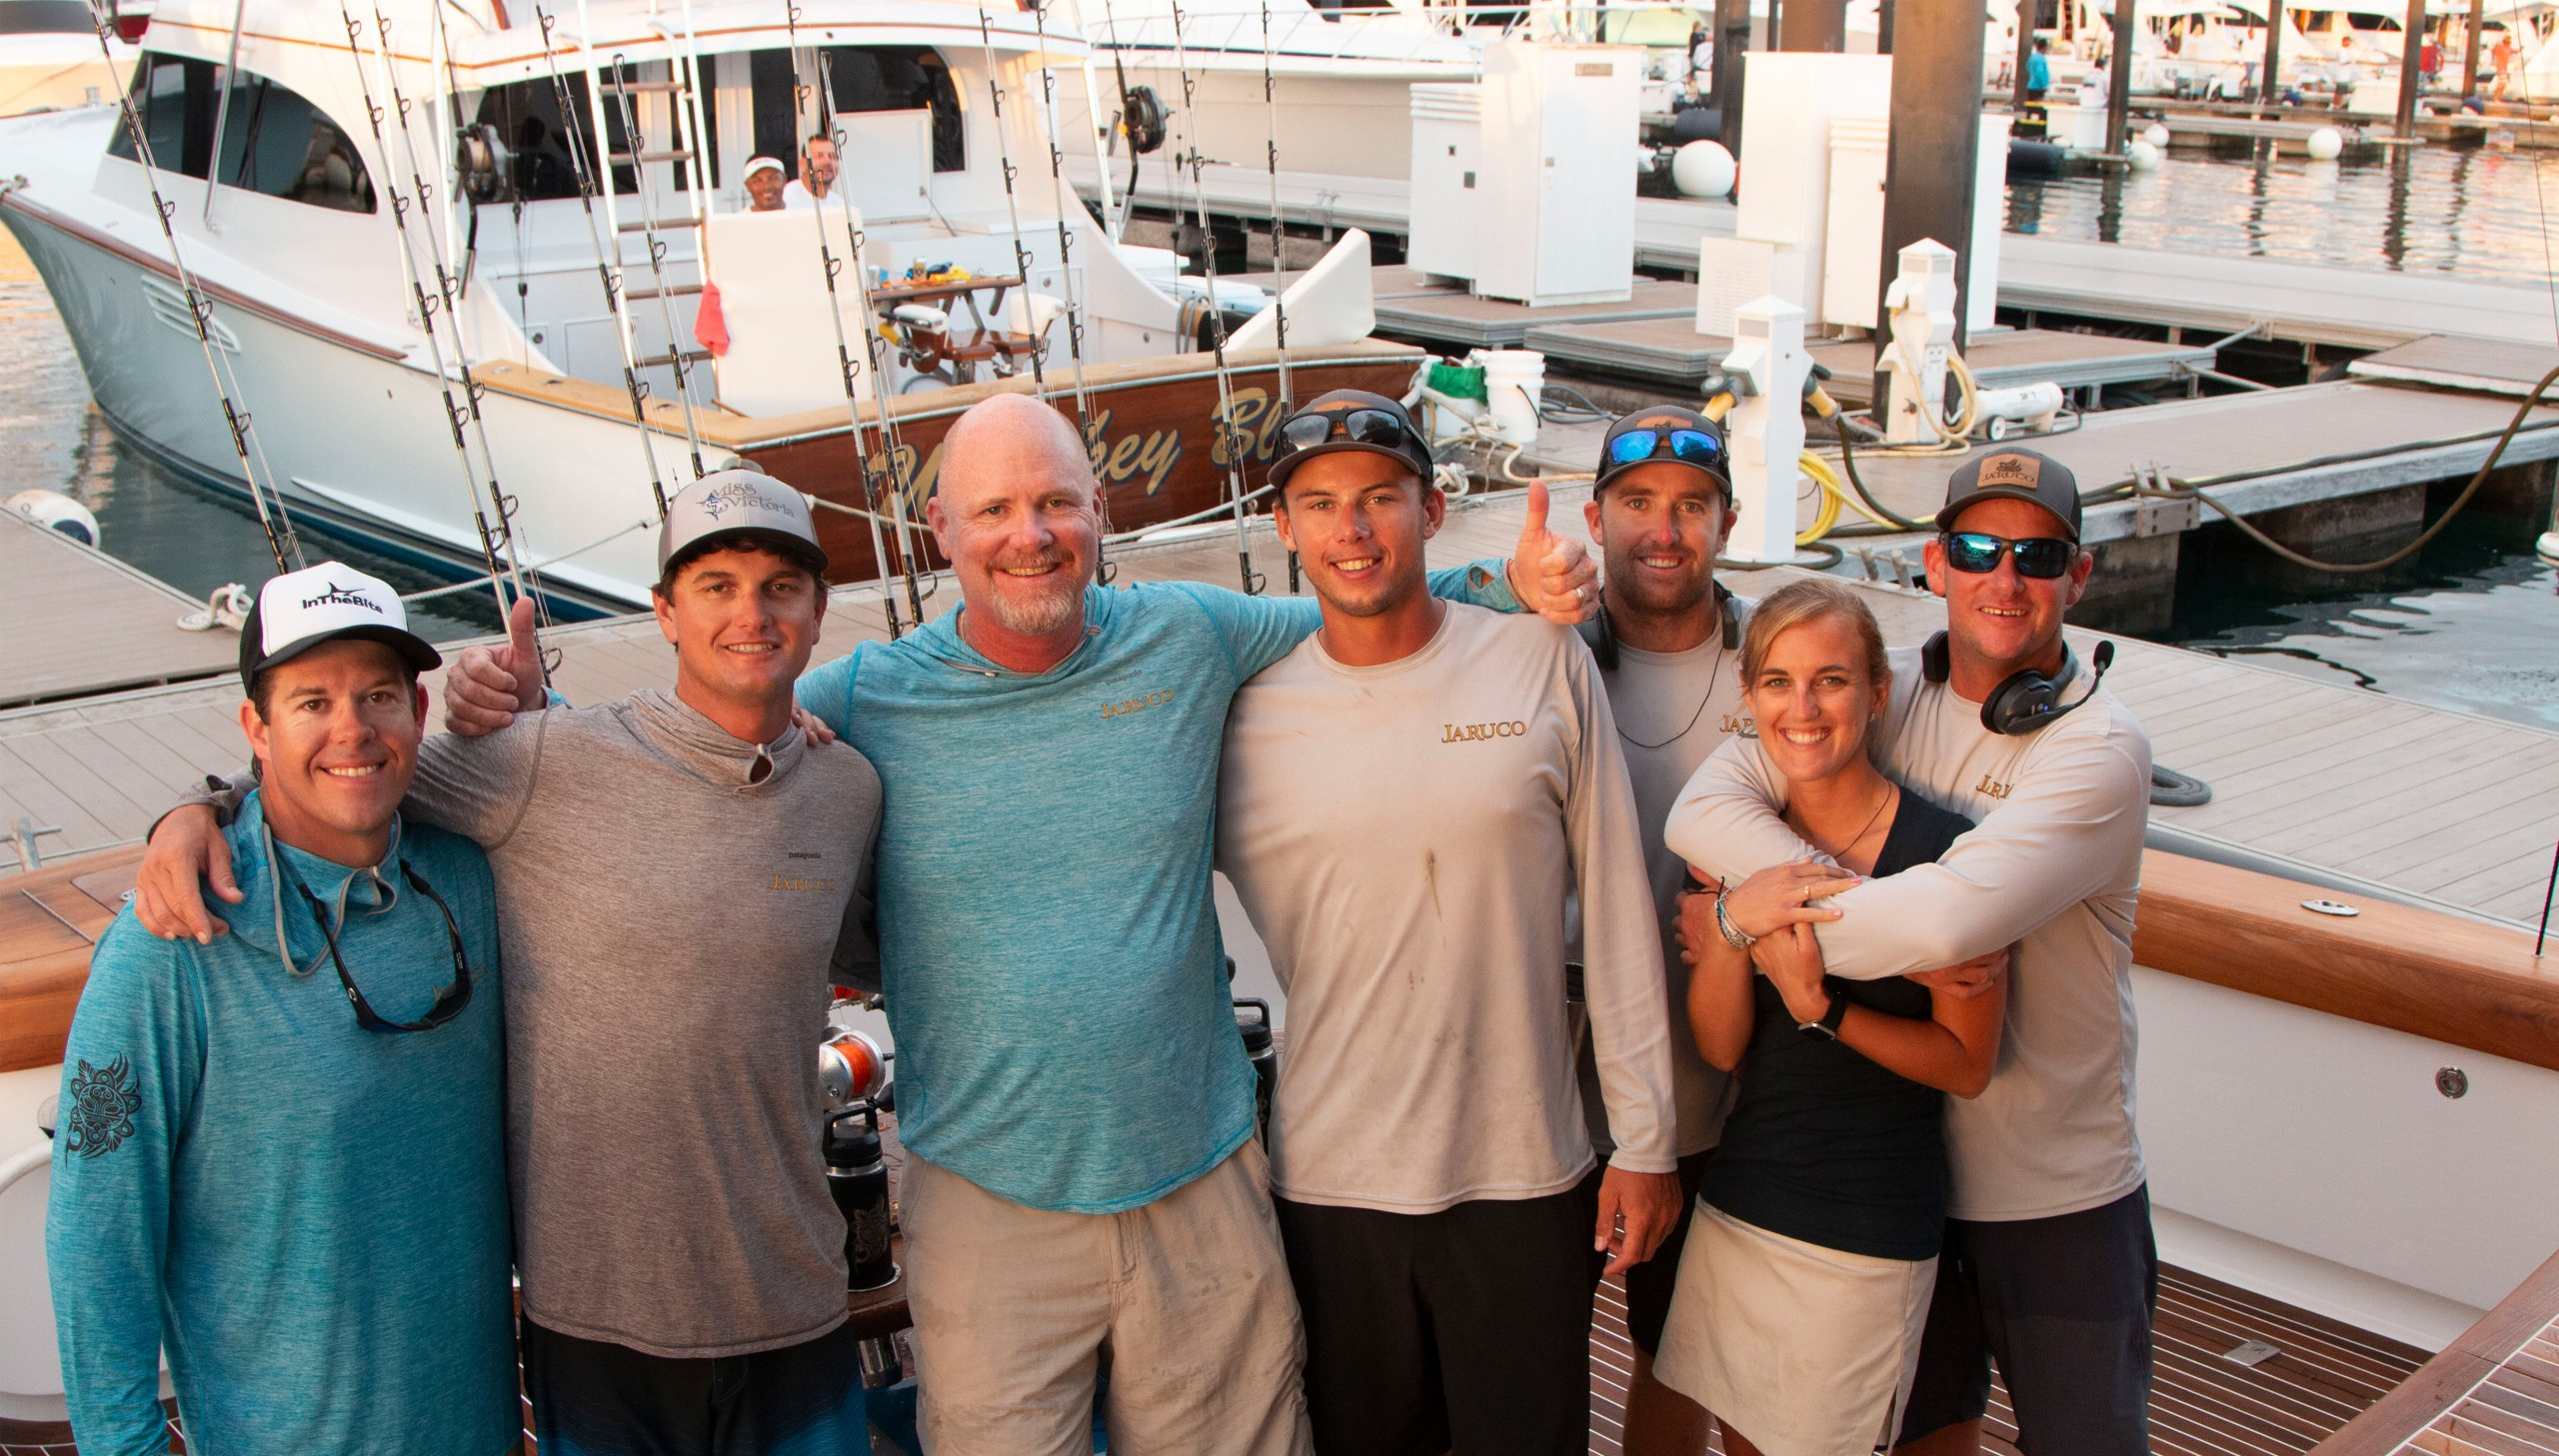 image of the Jaruco sportfishing crew on the back of the boat